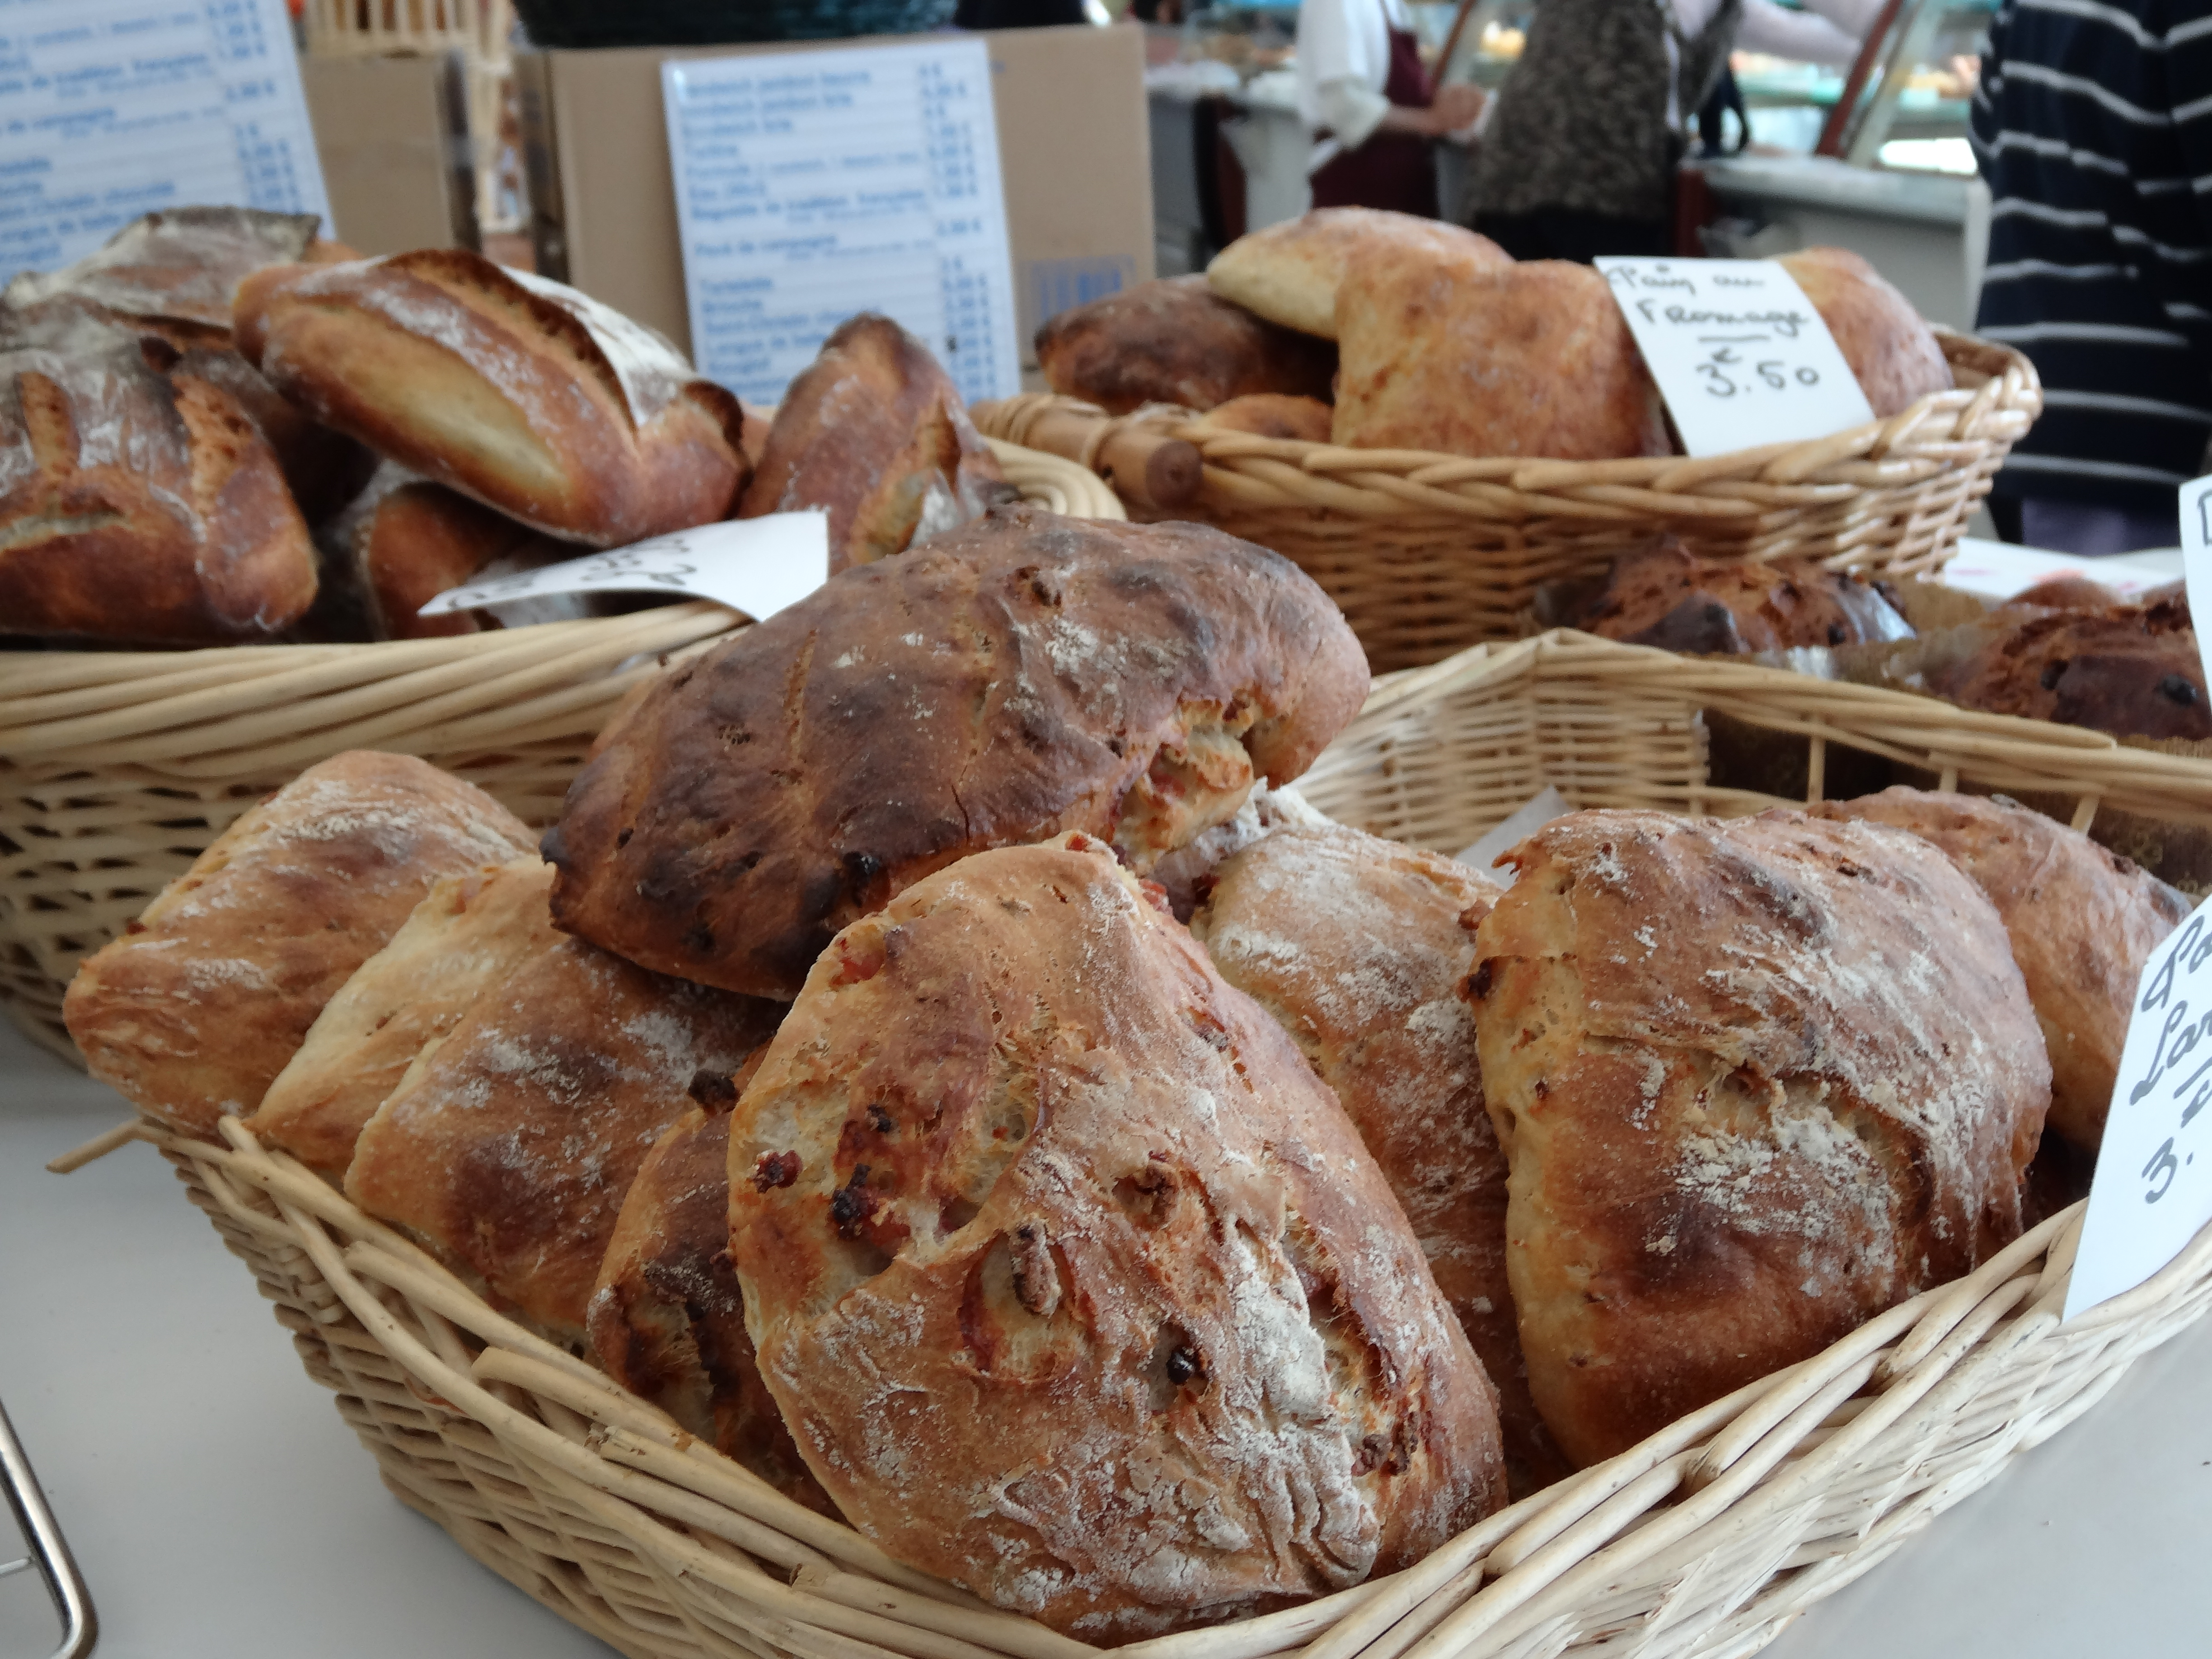 AH…..BREAD AND BREAD BAKERS